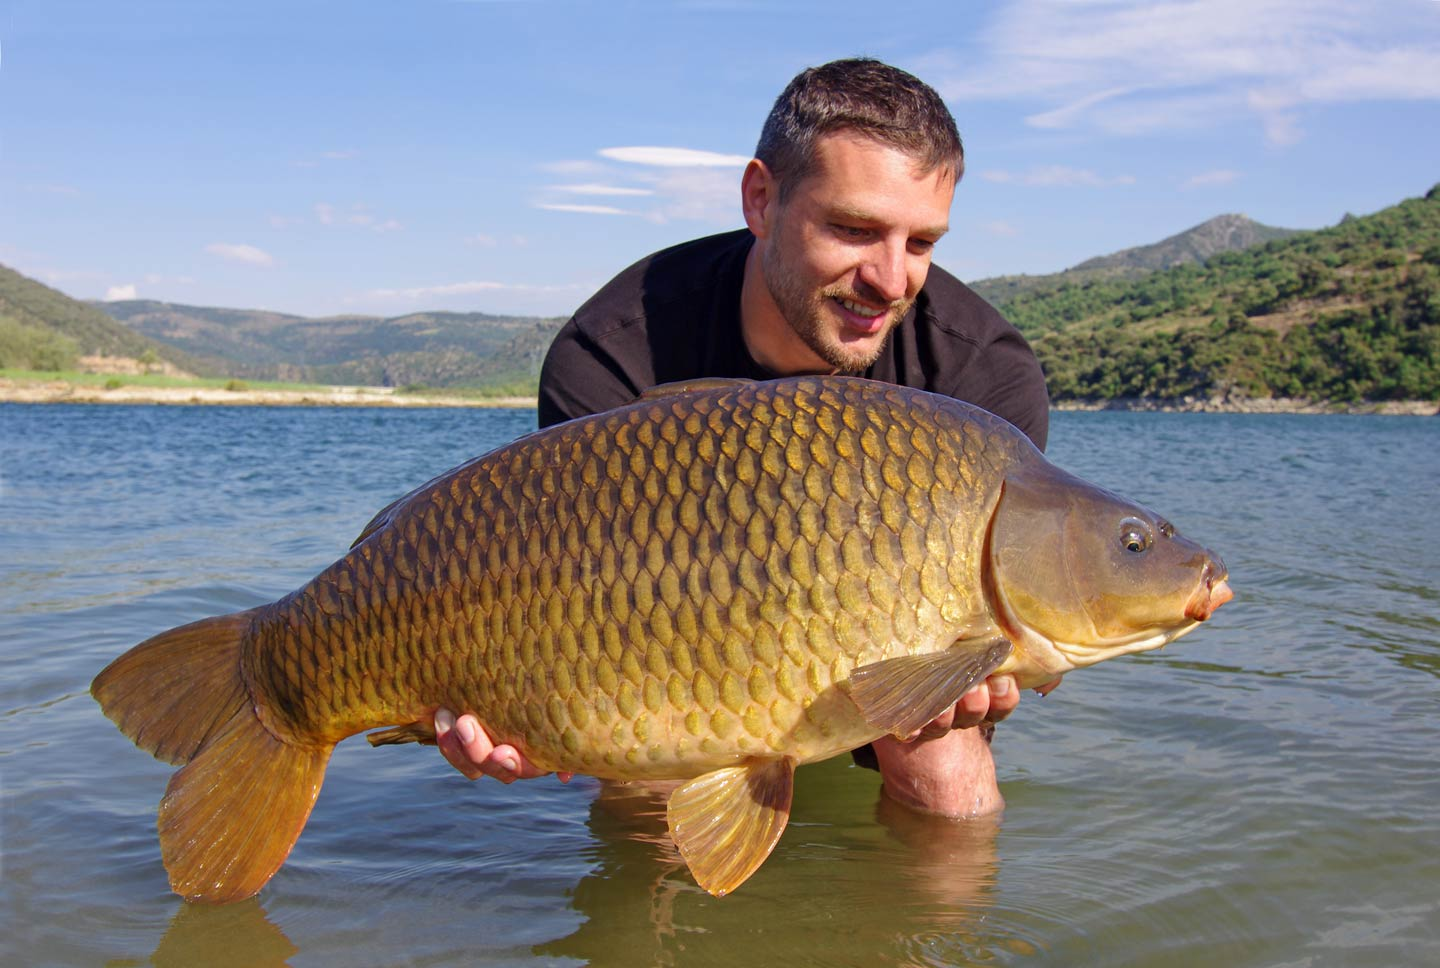 A man holding a big Carp in the water